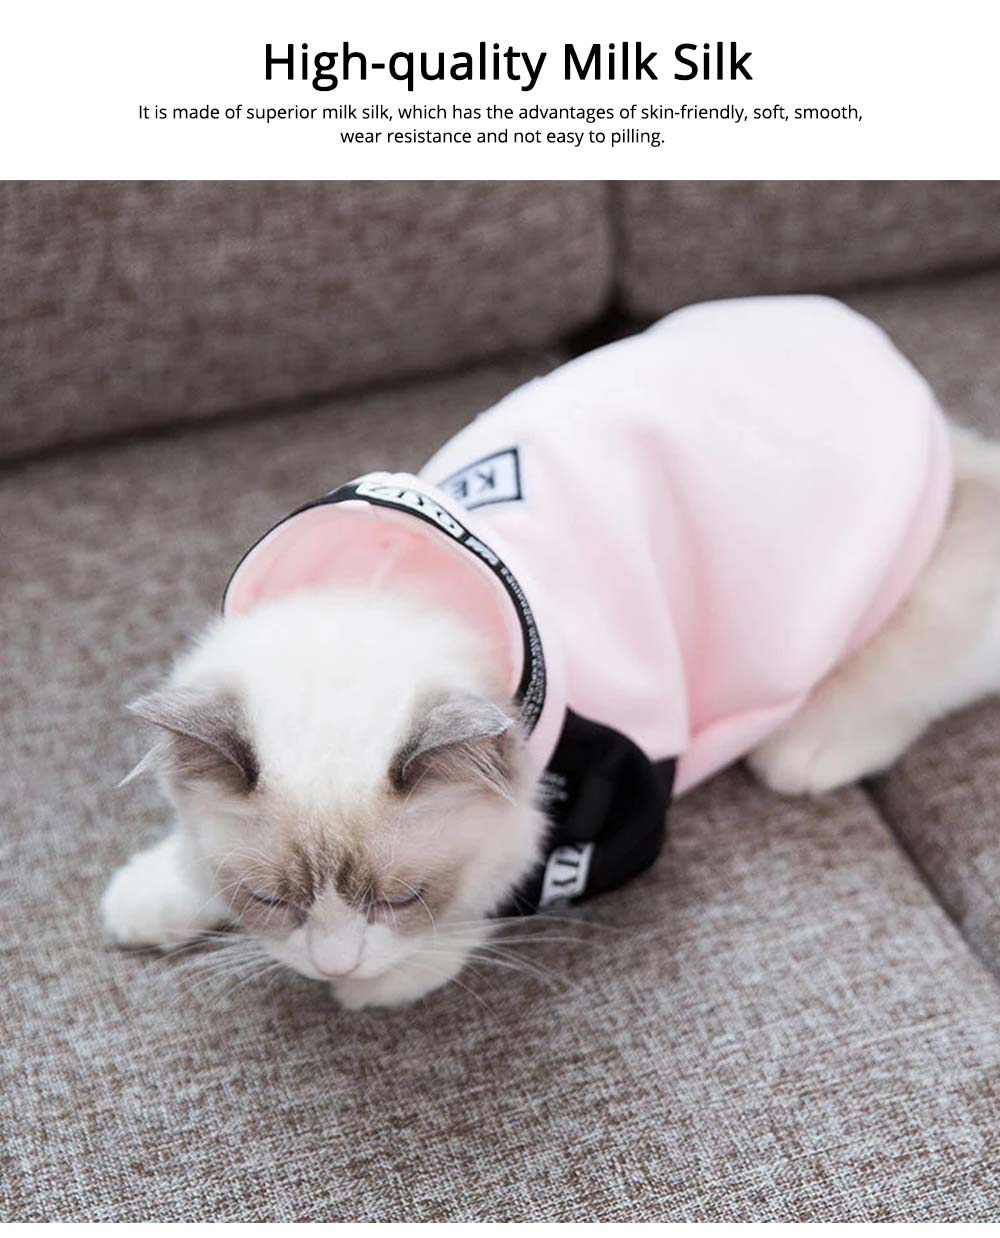 Milk Silk Cats Two-feet Pet Clothes, Stylish Pet Clothes Costume Apparel with Fashion Athletic Tape Especially for Cats, Skin Friendly  1